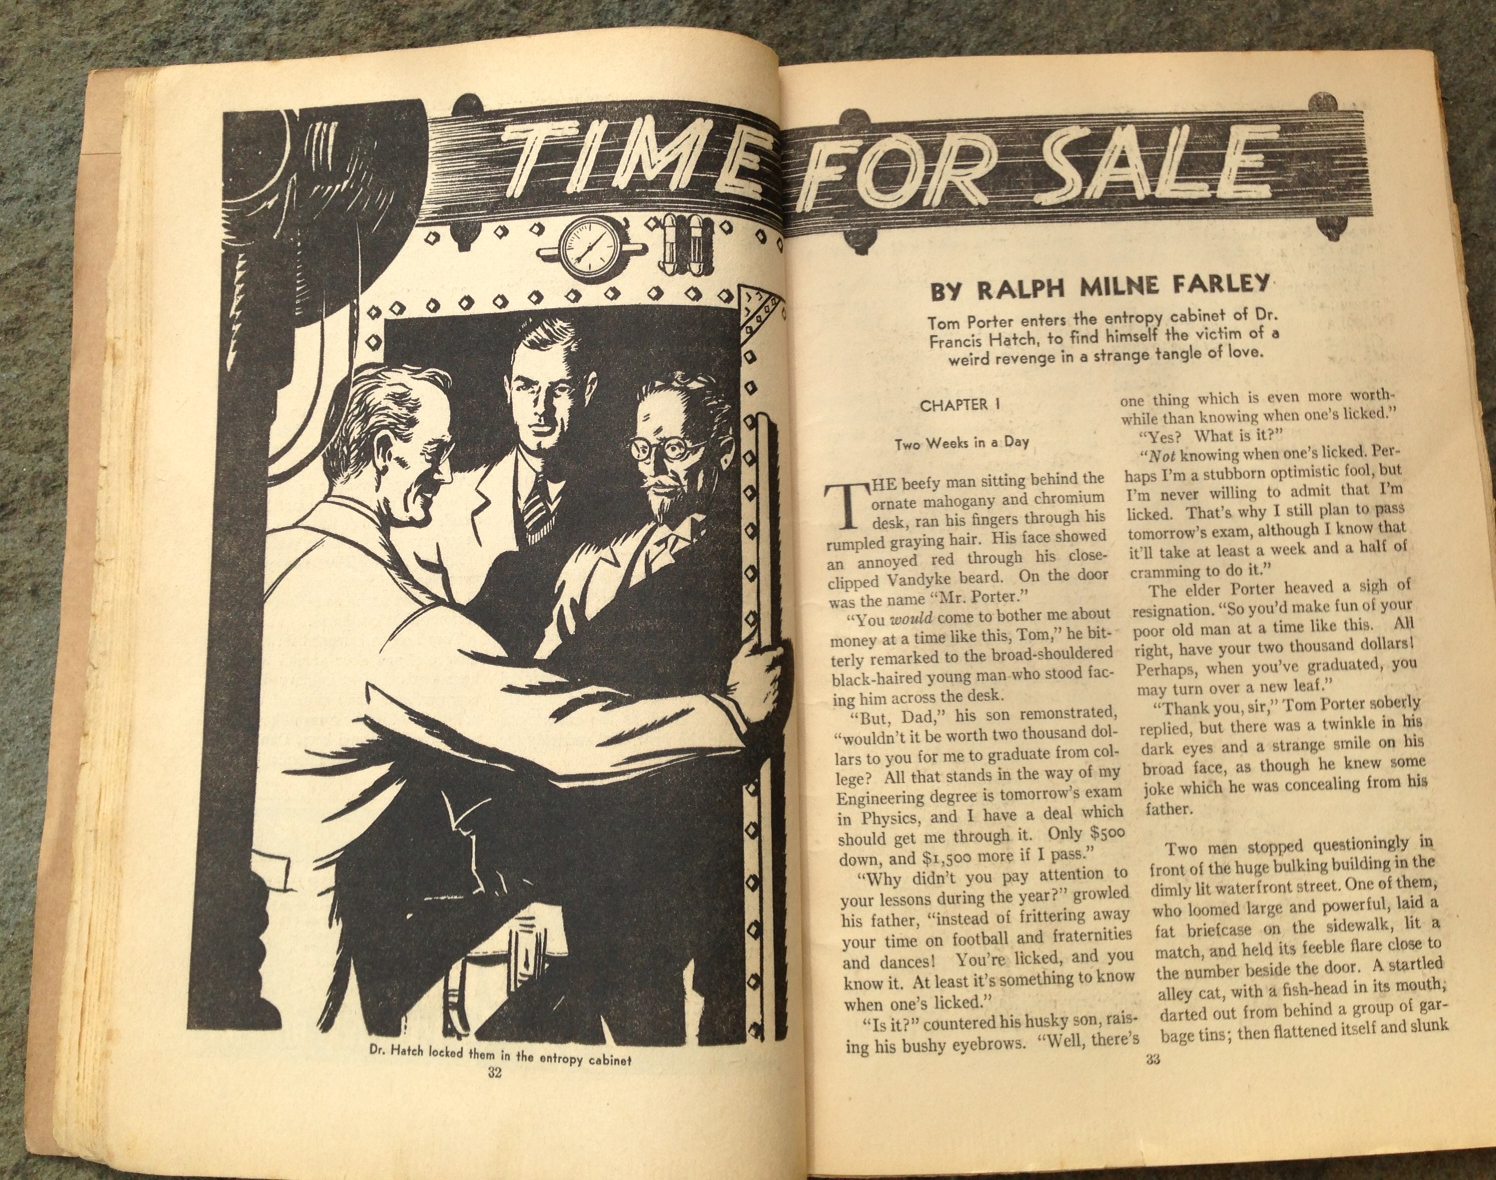 Time for Sale by Harold Kee Welch, 1938